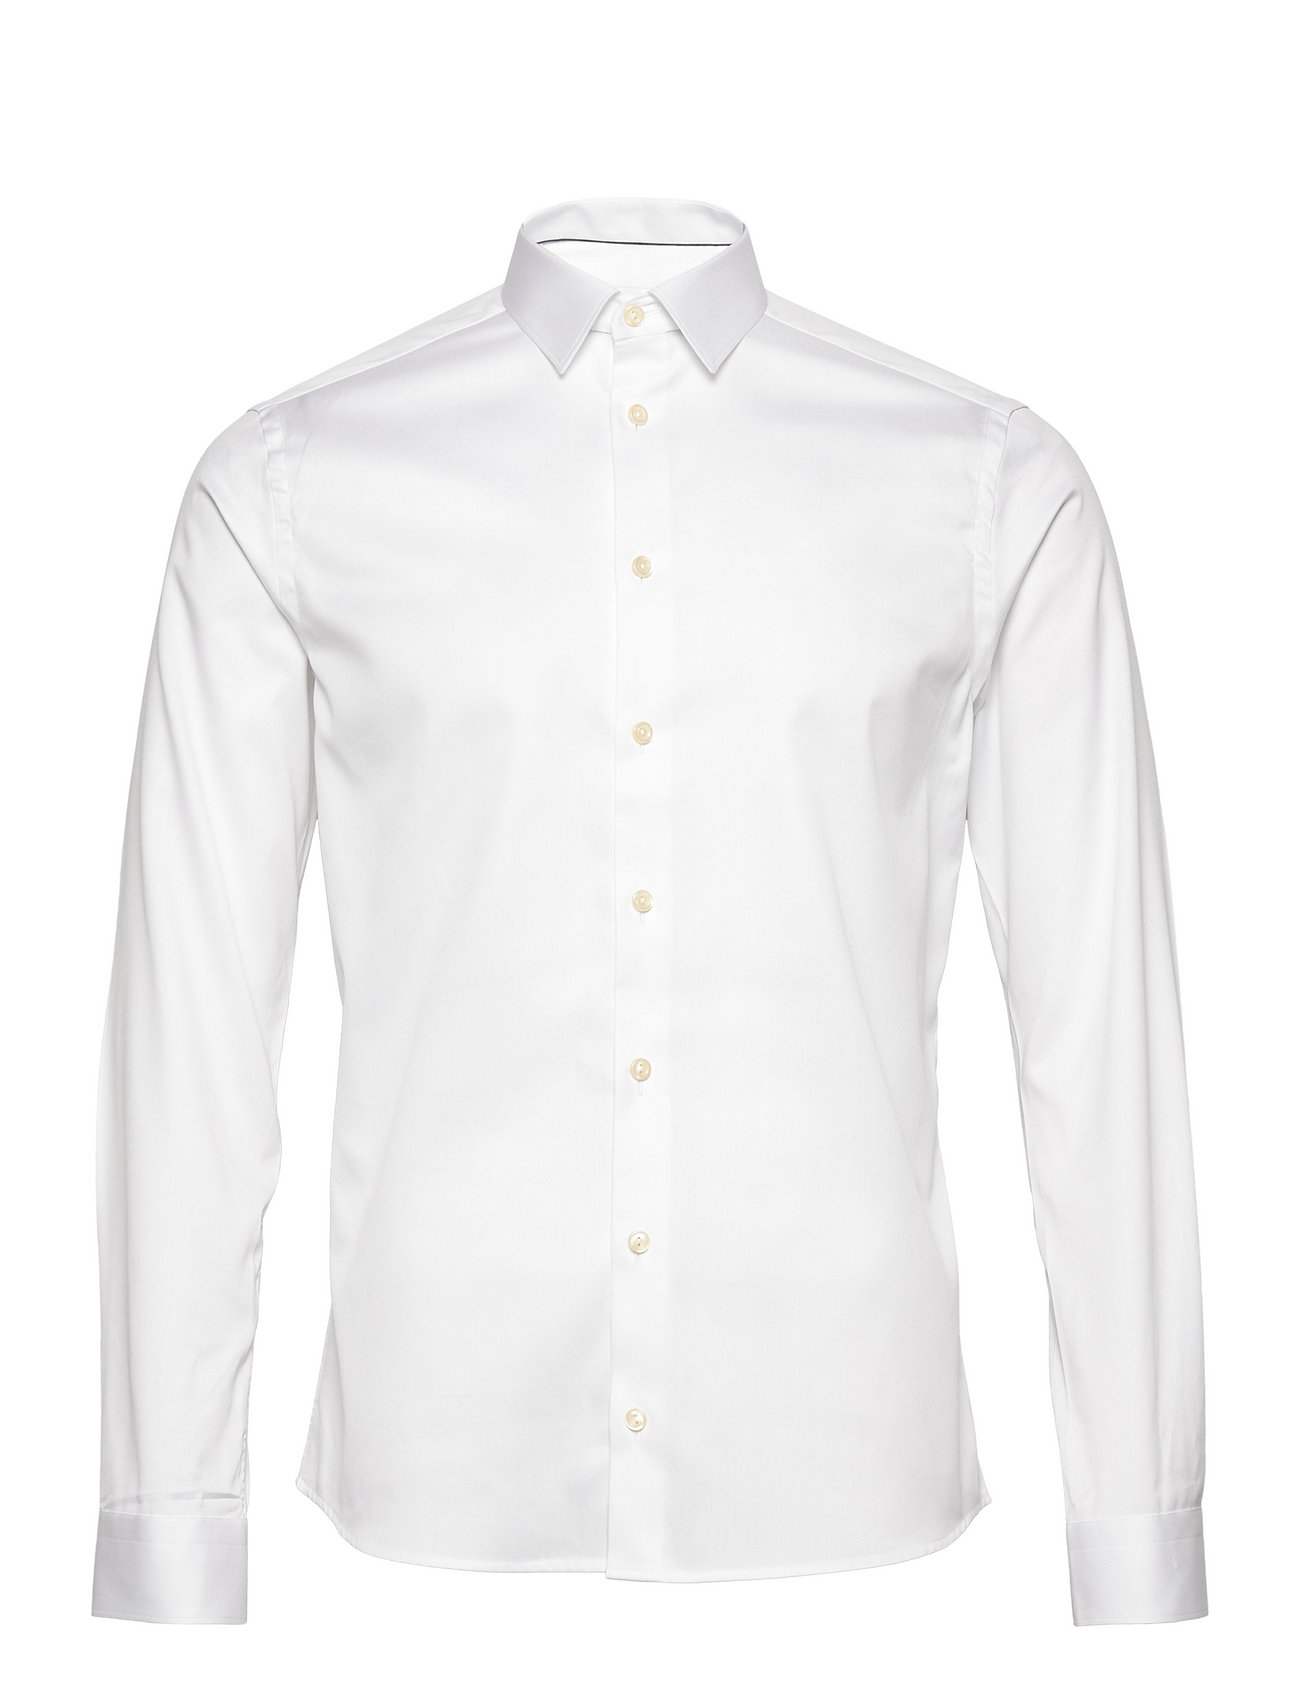 Eton Signature Twill-Super slim - WHITE